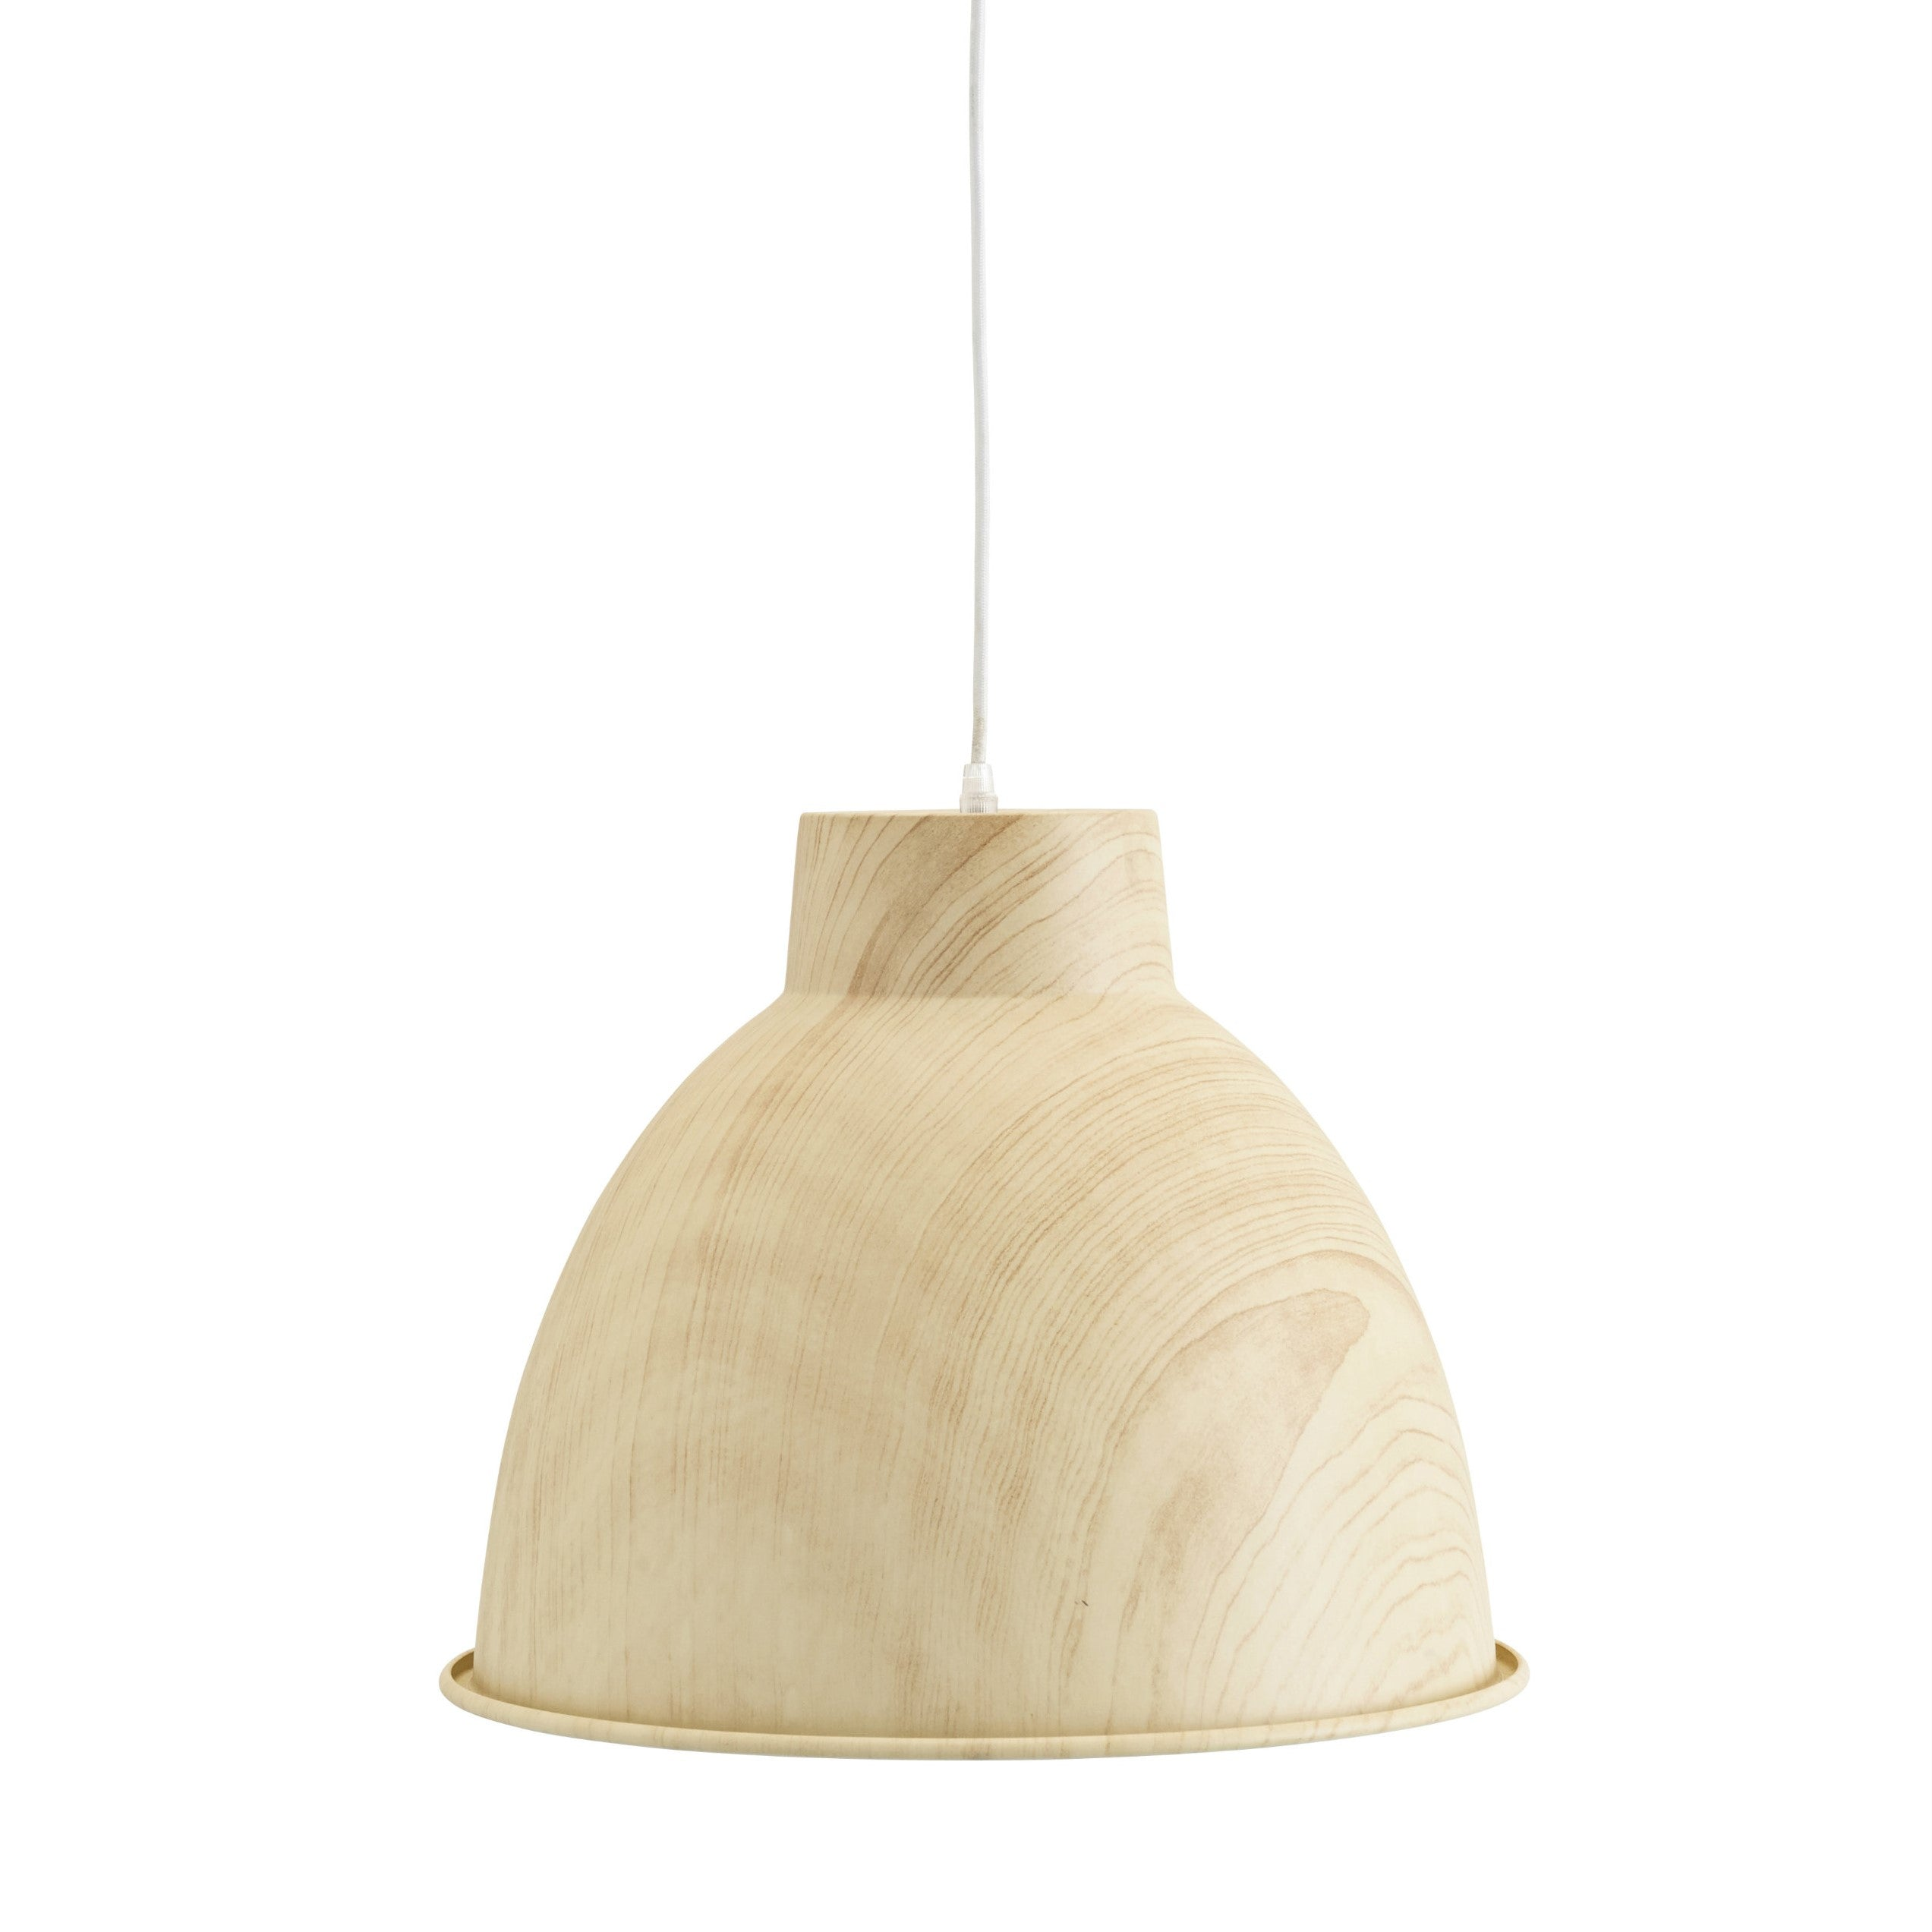 Wood Effect Ceiling Lamp